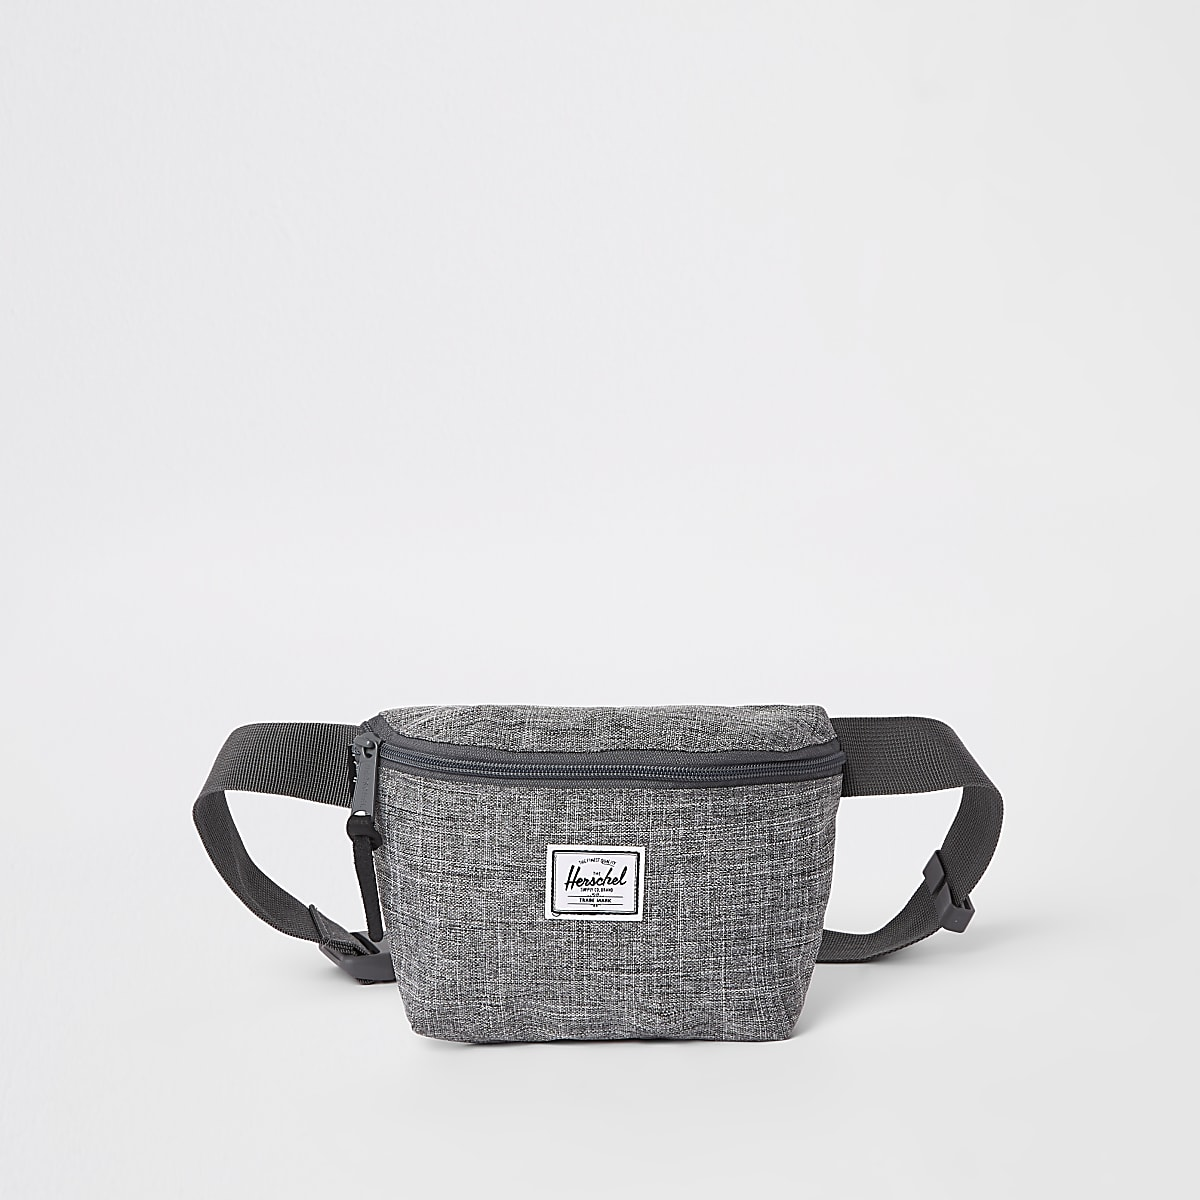 Herschel grey marl Fourteen cross body bag